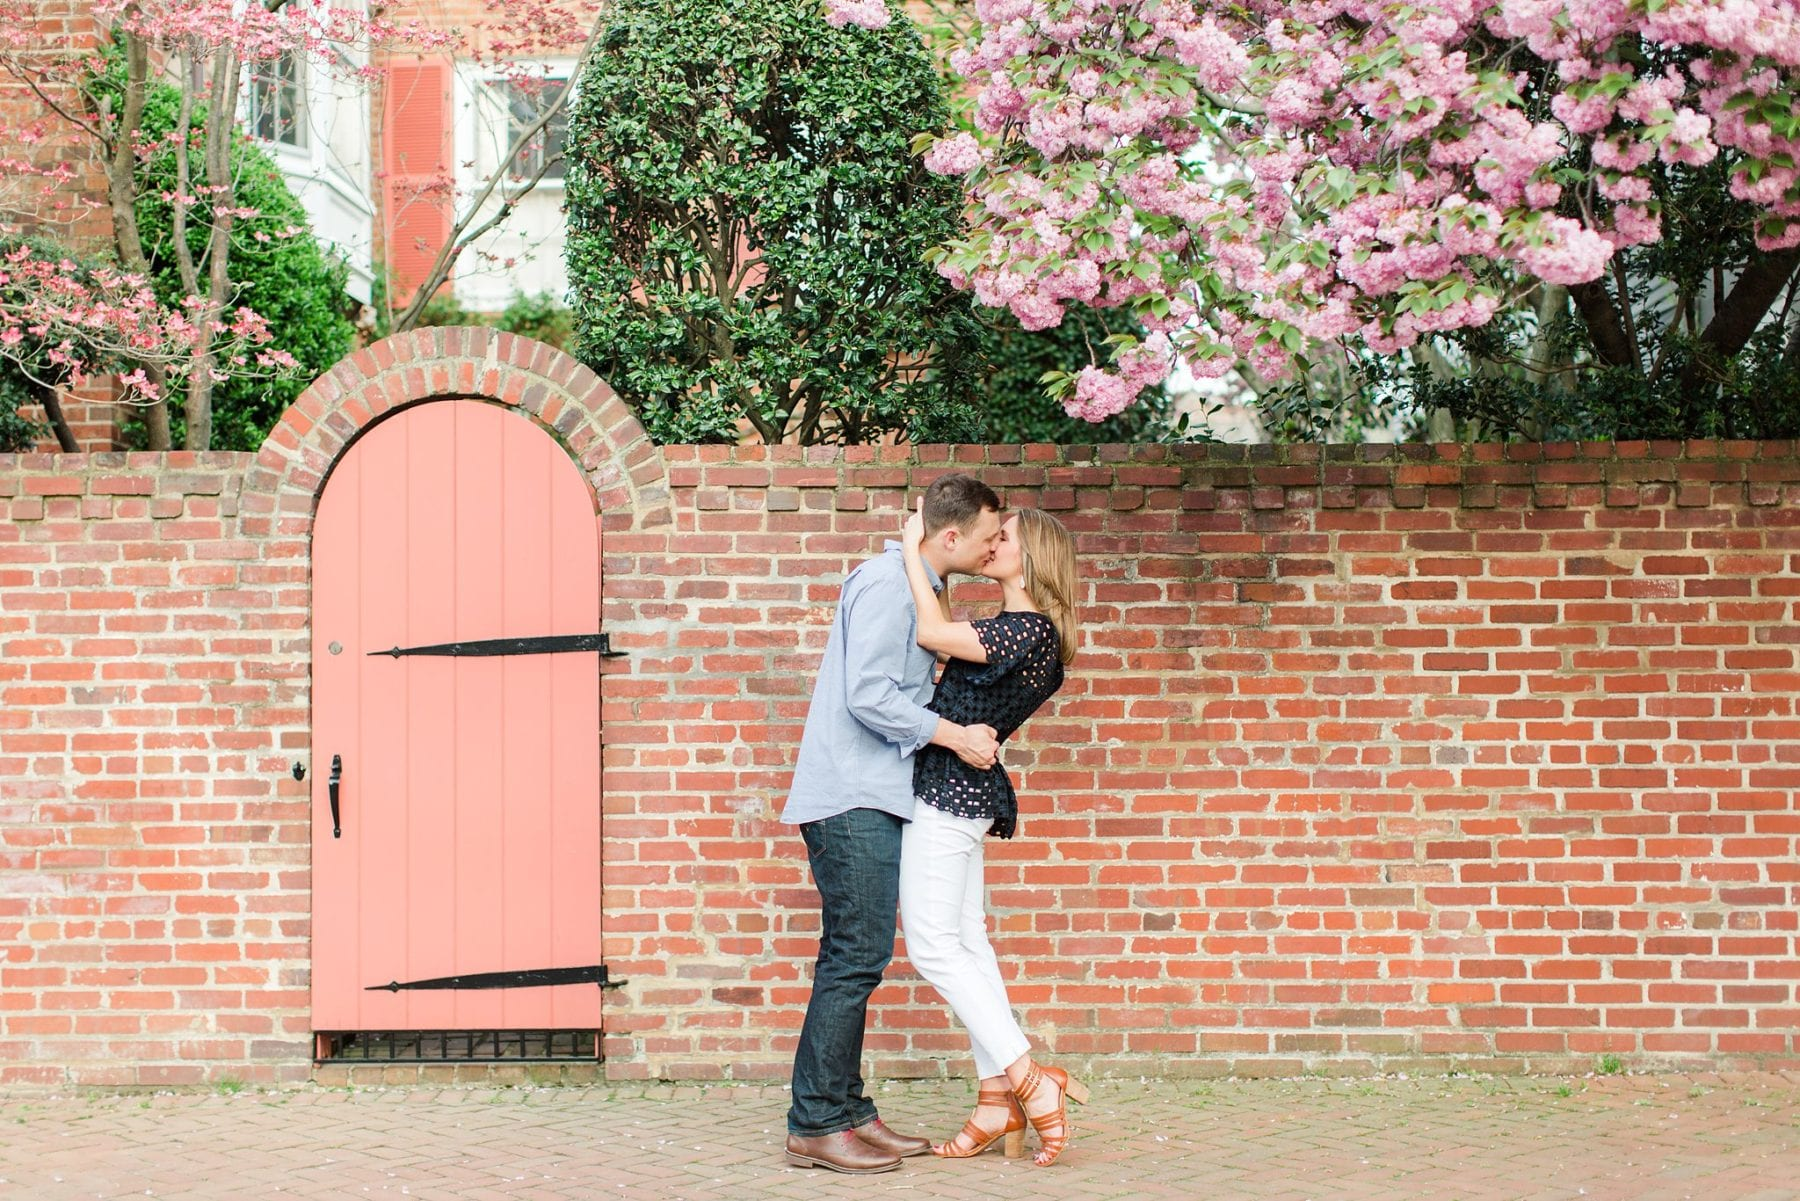 Springtime Old Town Alexandria Engagement Session Matt & Maxie Megan Kelsey Photography-192.jpg